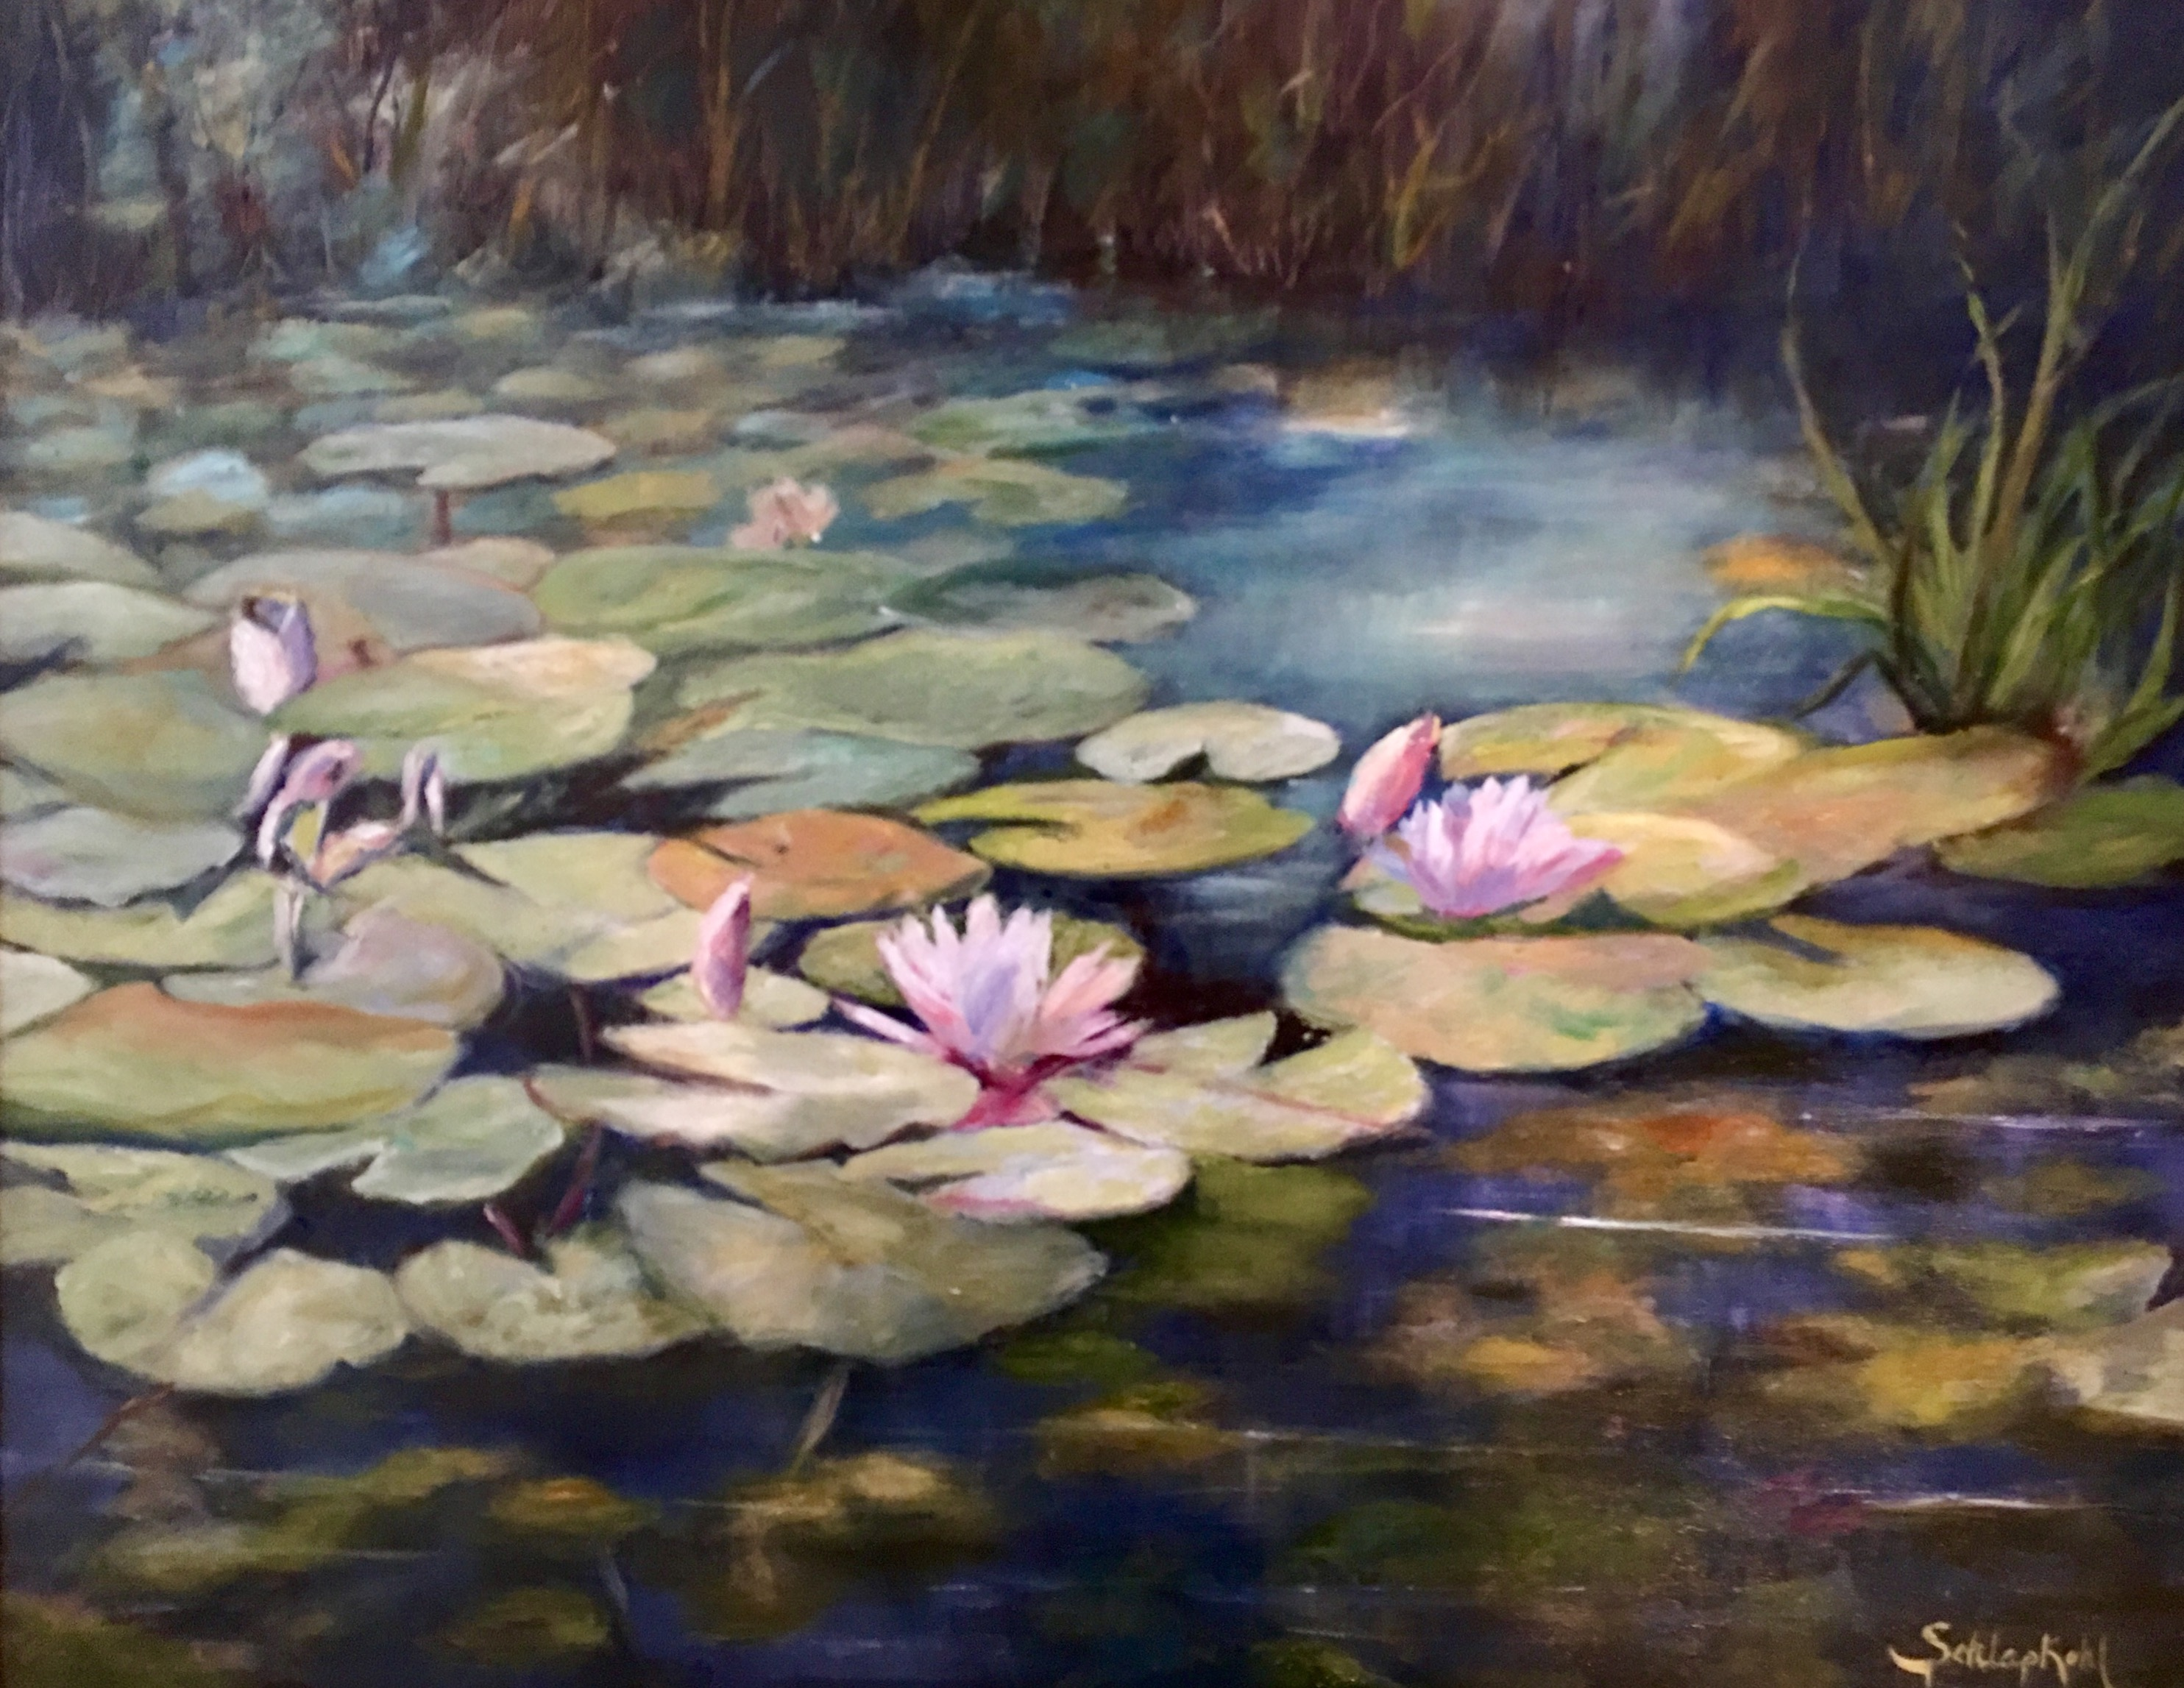 Schlapkohl-Monet Waterlily Inspiration